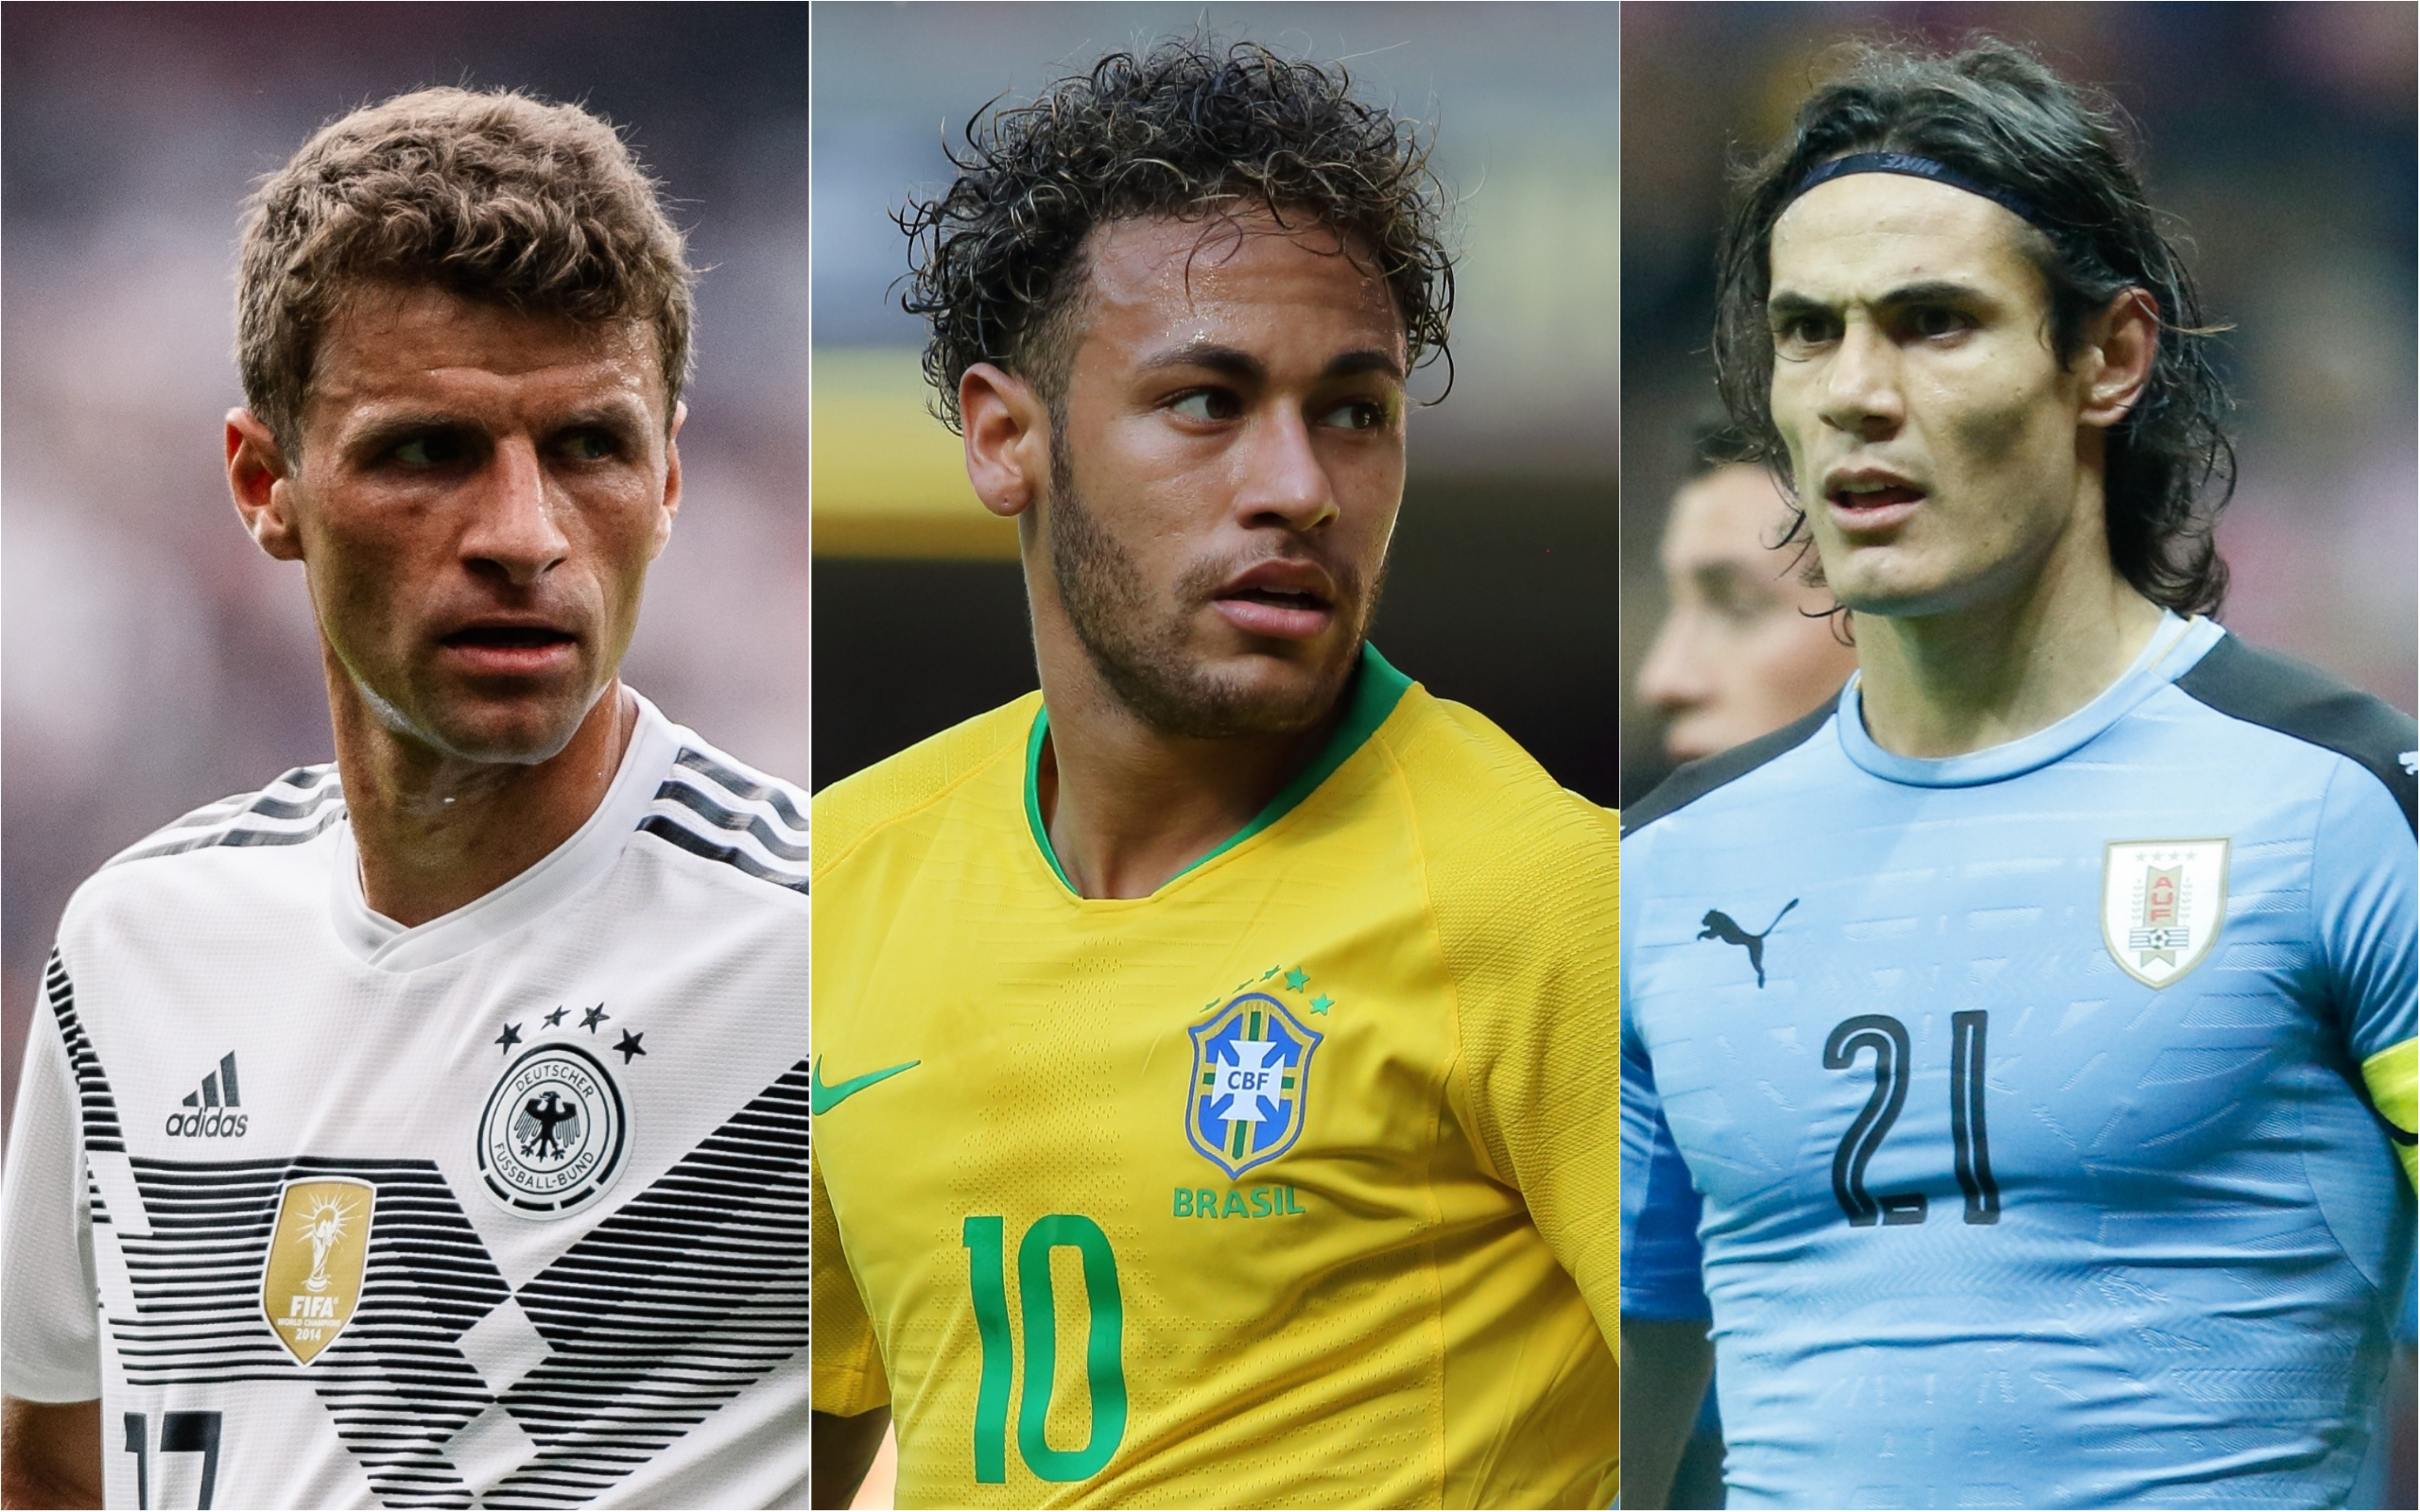 World Cup Fantasy Football: The best players to pick for your team revealed